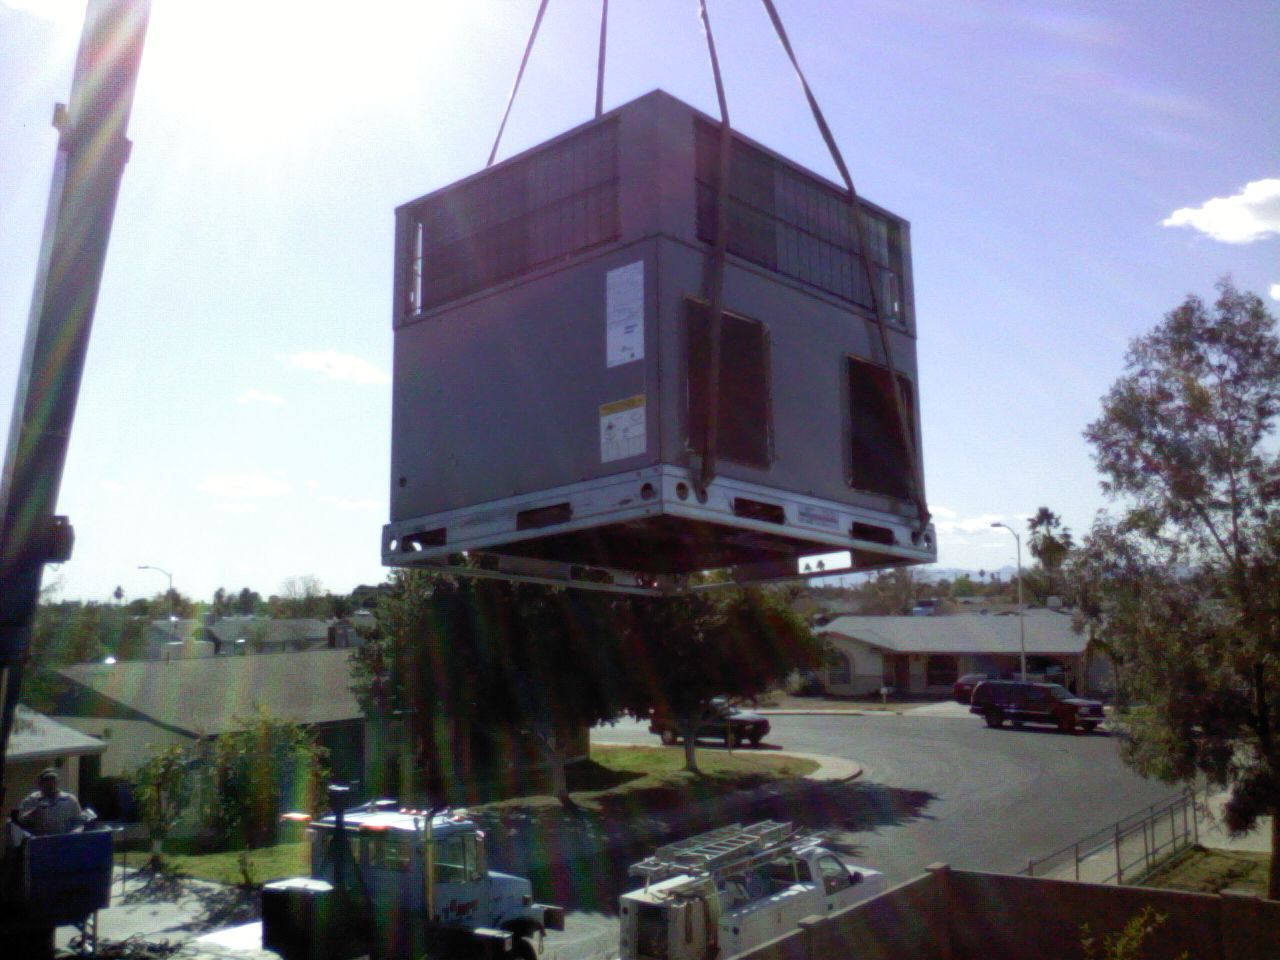 Heil heat pump unit hoisted up to roof by crane